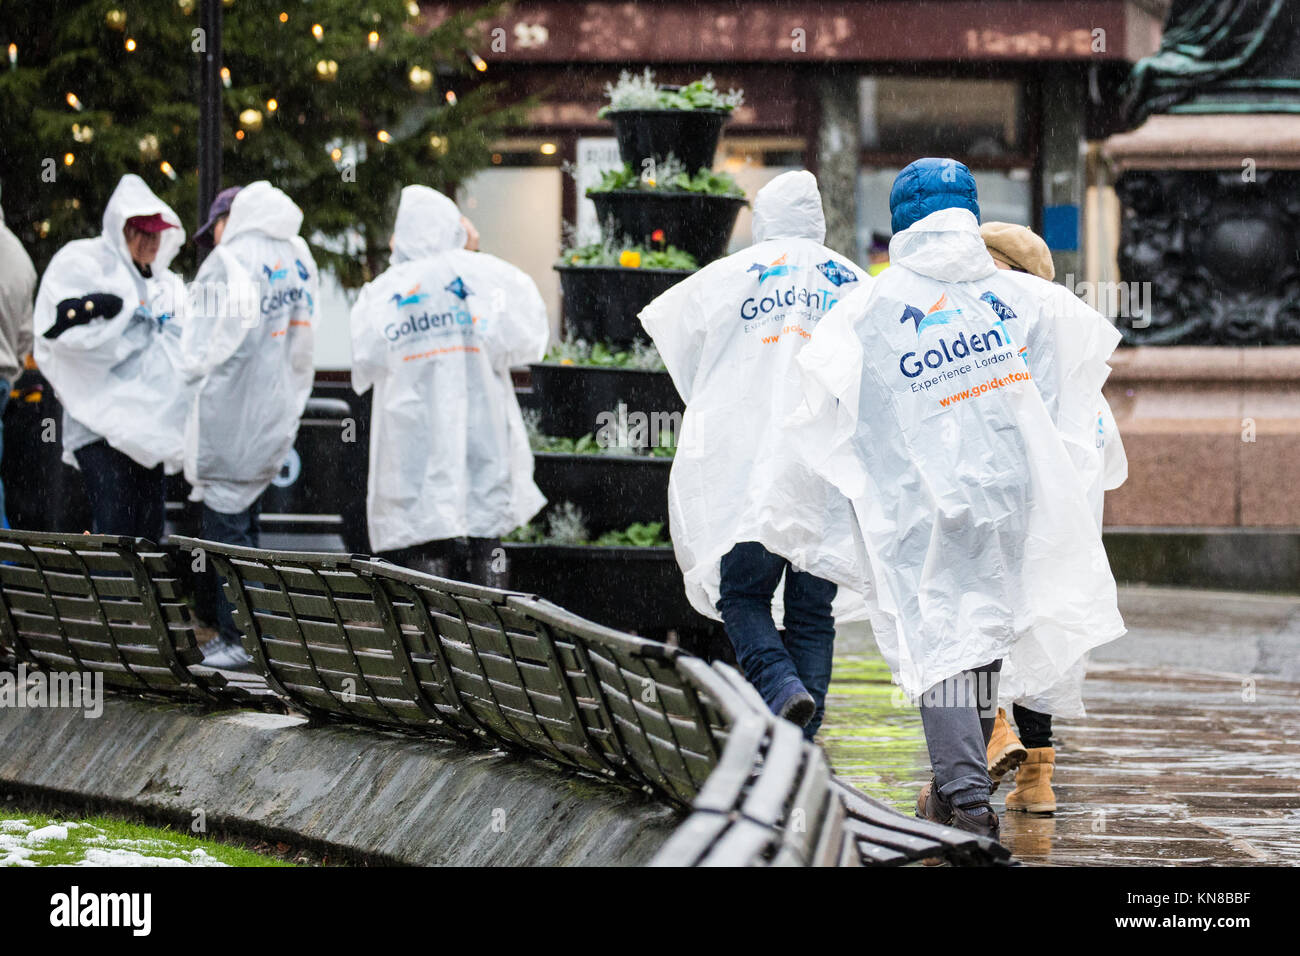 Windsor, UK. 11th Dec, 2017. Tourists arrive well-equipped to brave heavy rain on a visit to Windsor Castle. Credit: - Stock Image